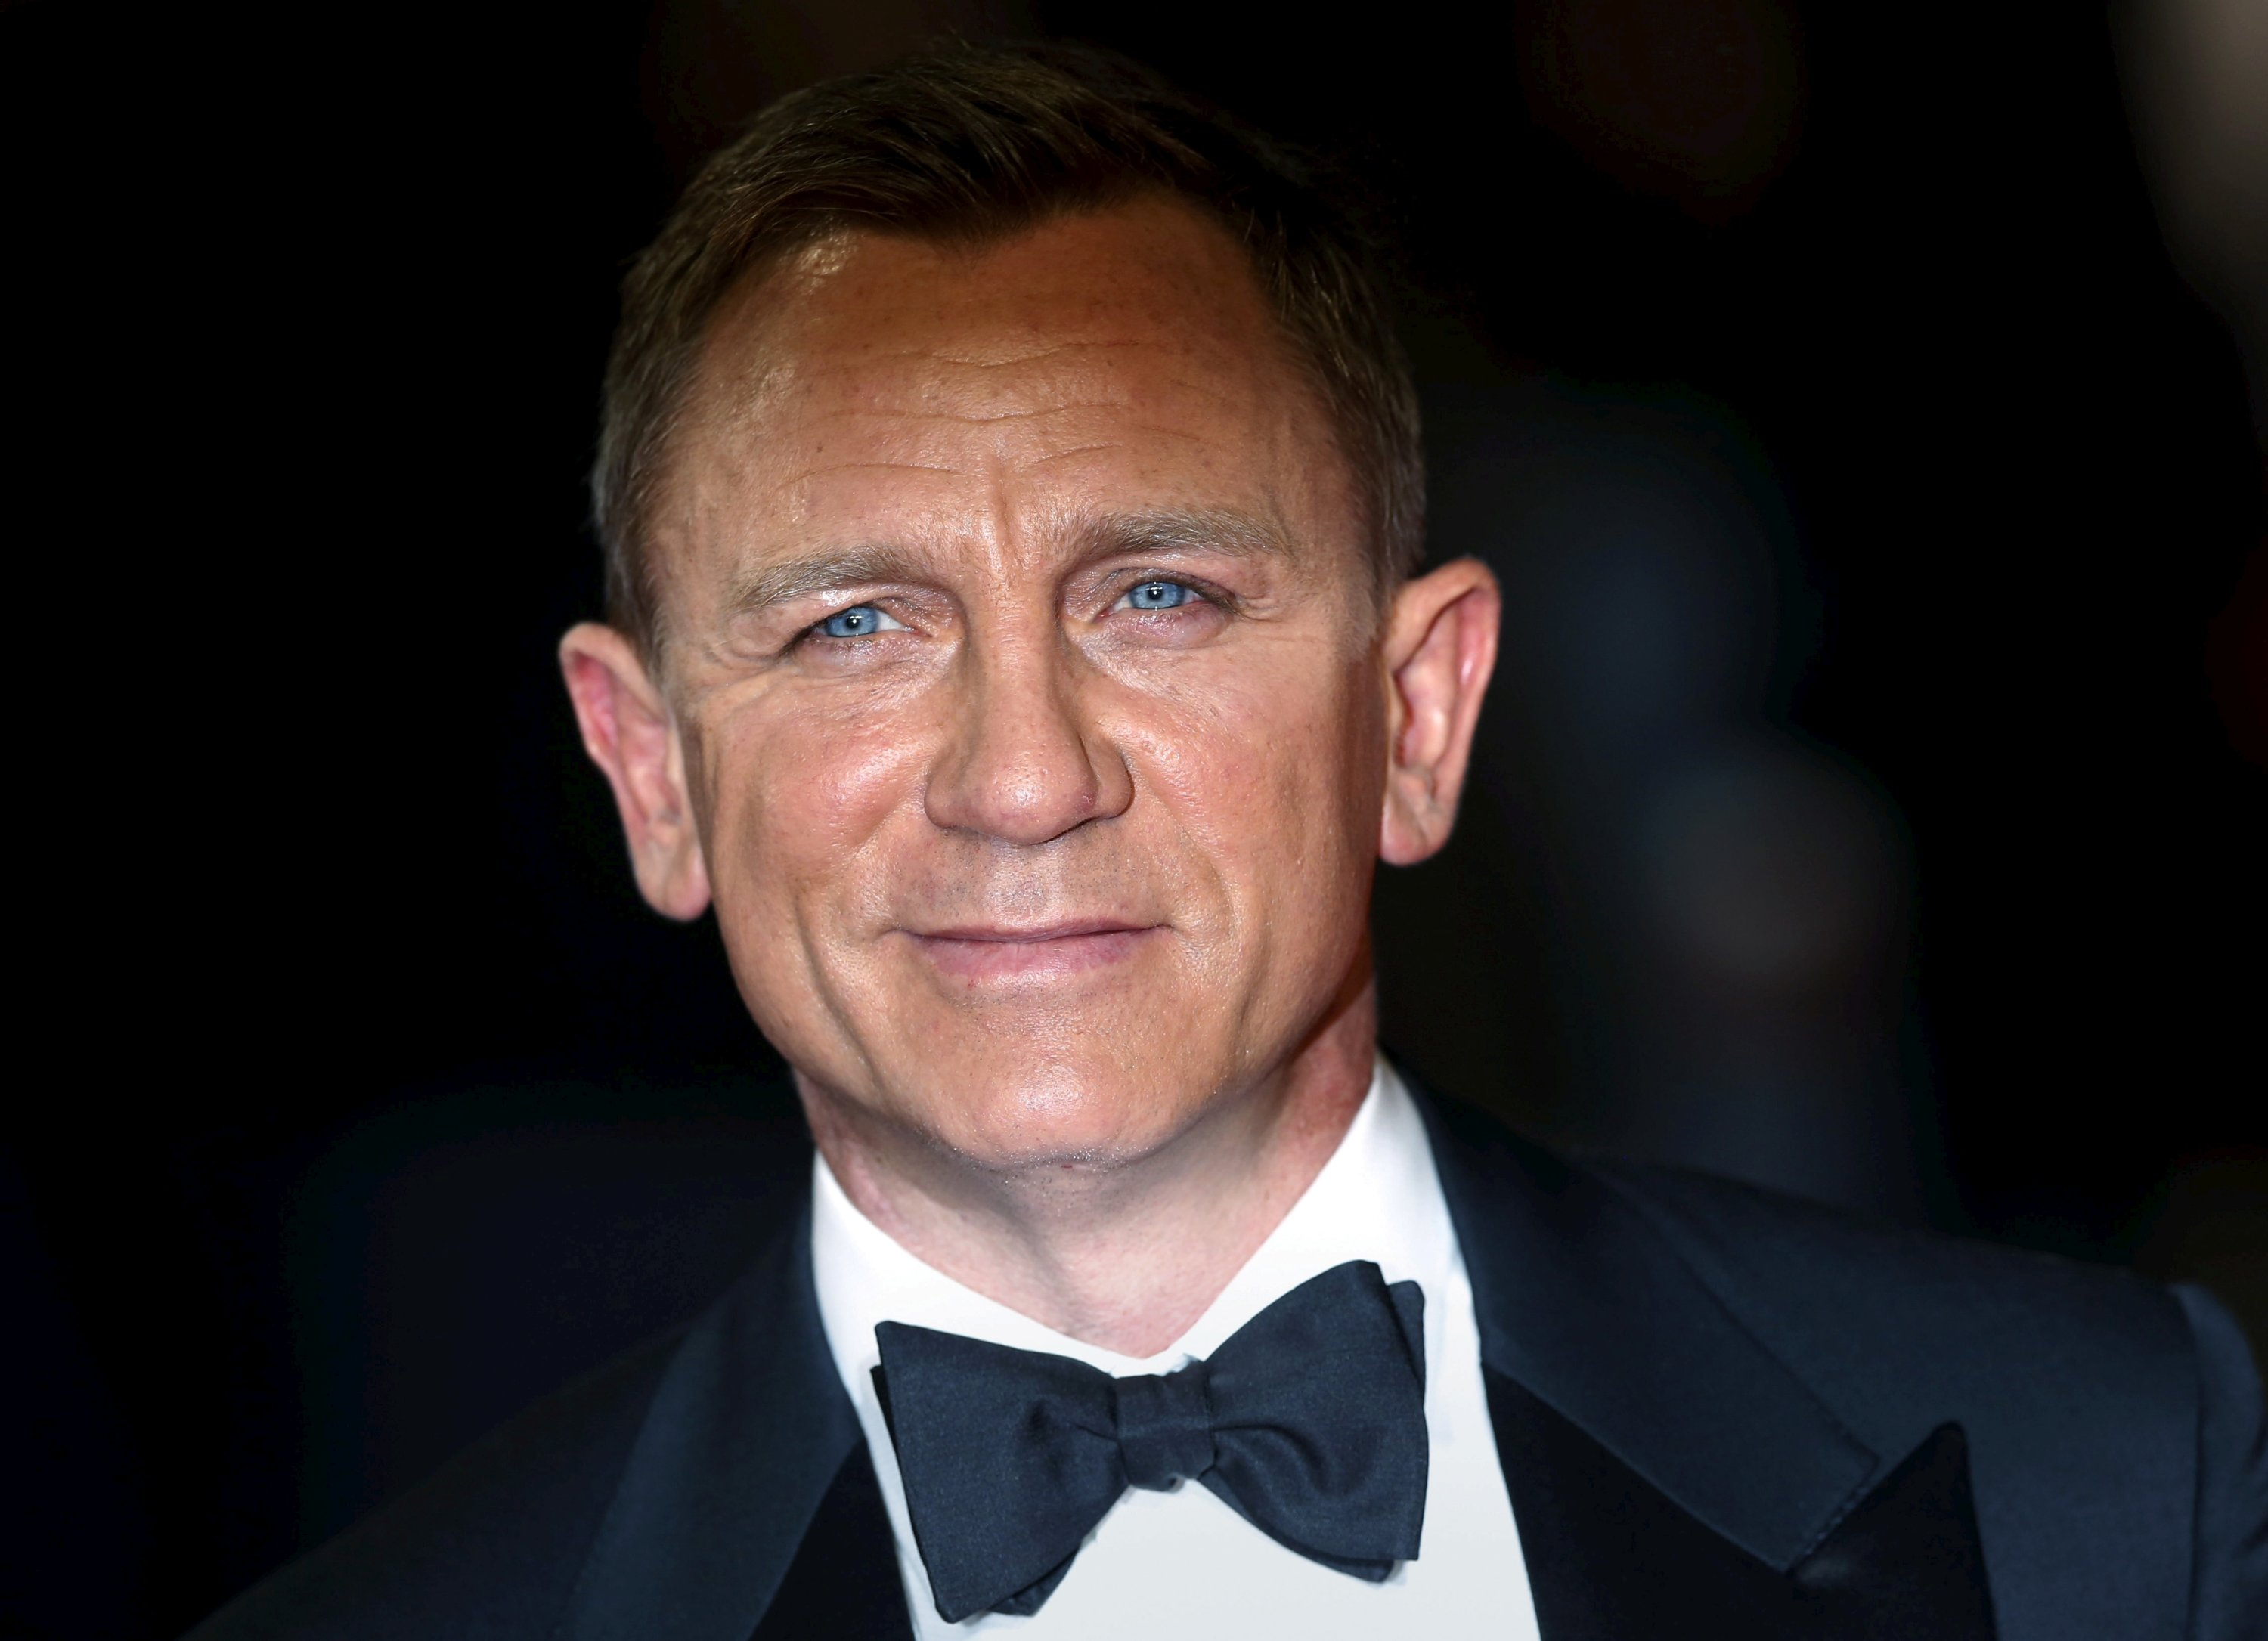 Craig returns in the highly-anticipated 25th Bond movie next week after an 18-month delay due to COVID-19